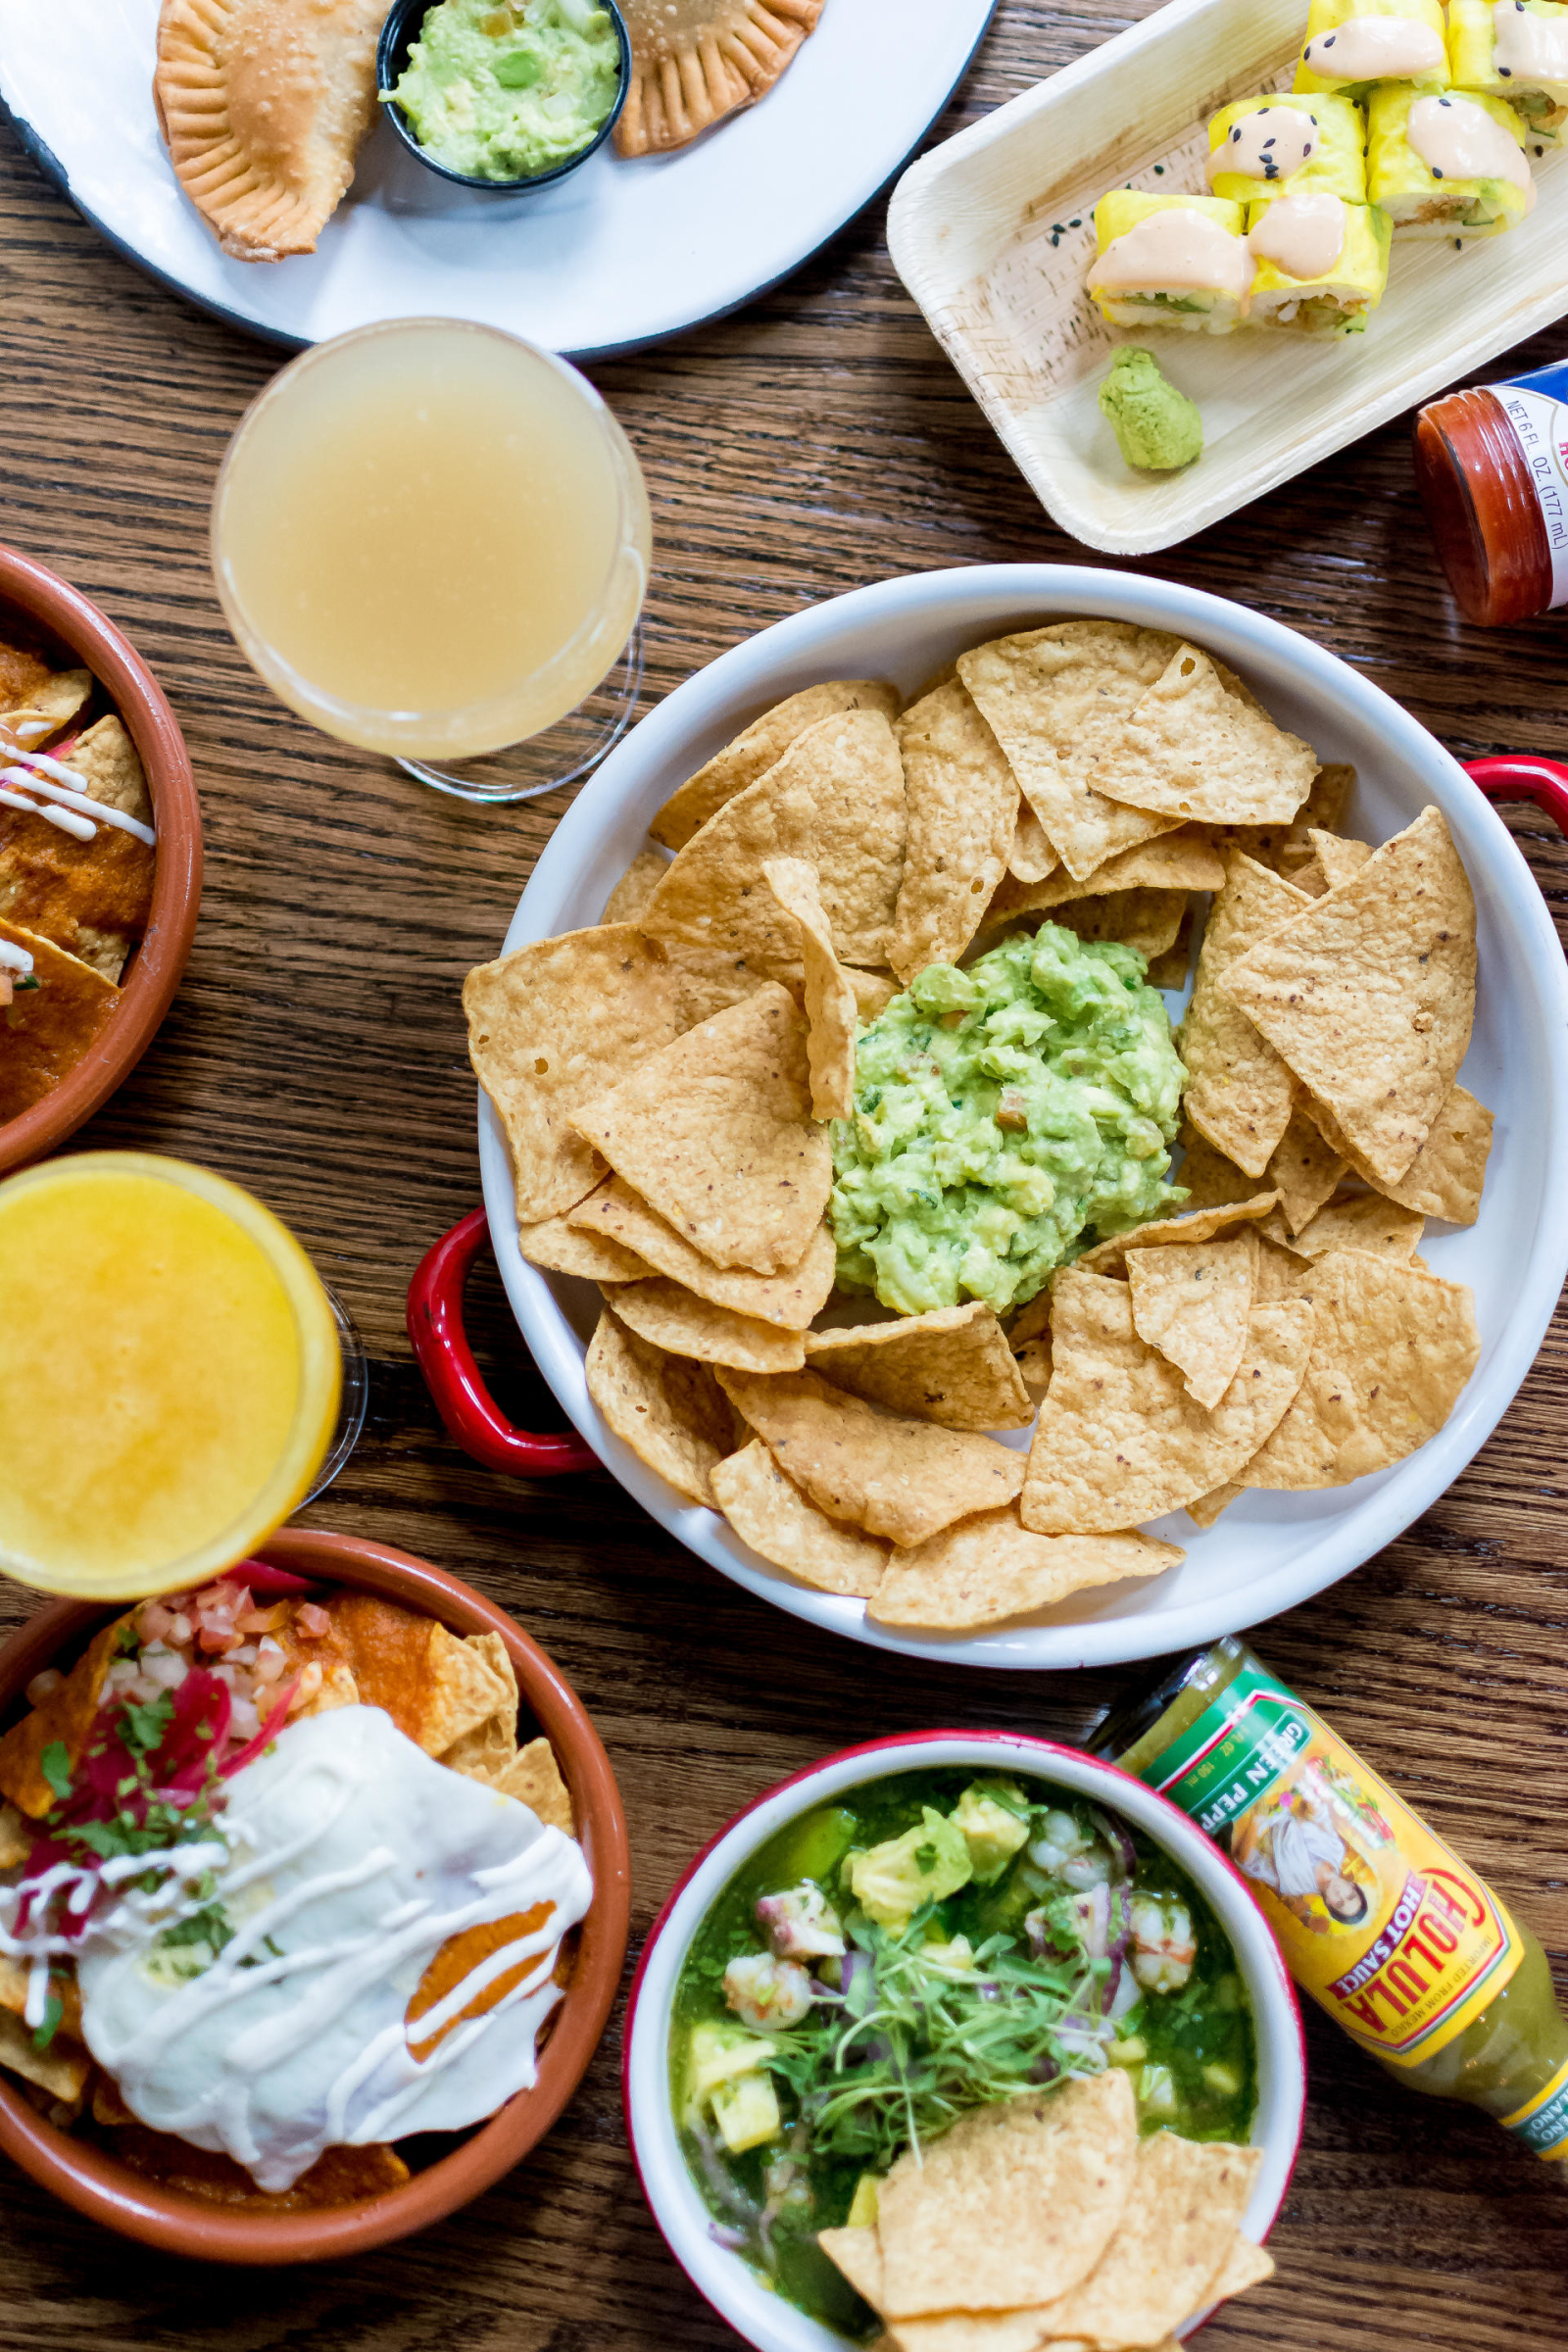 Brunch at Chicago's Latinicity